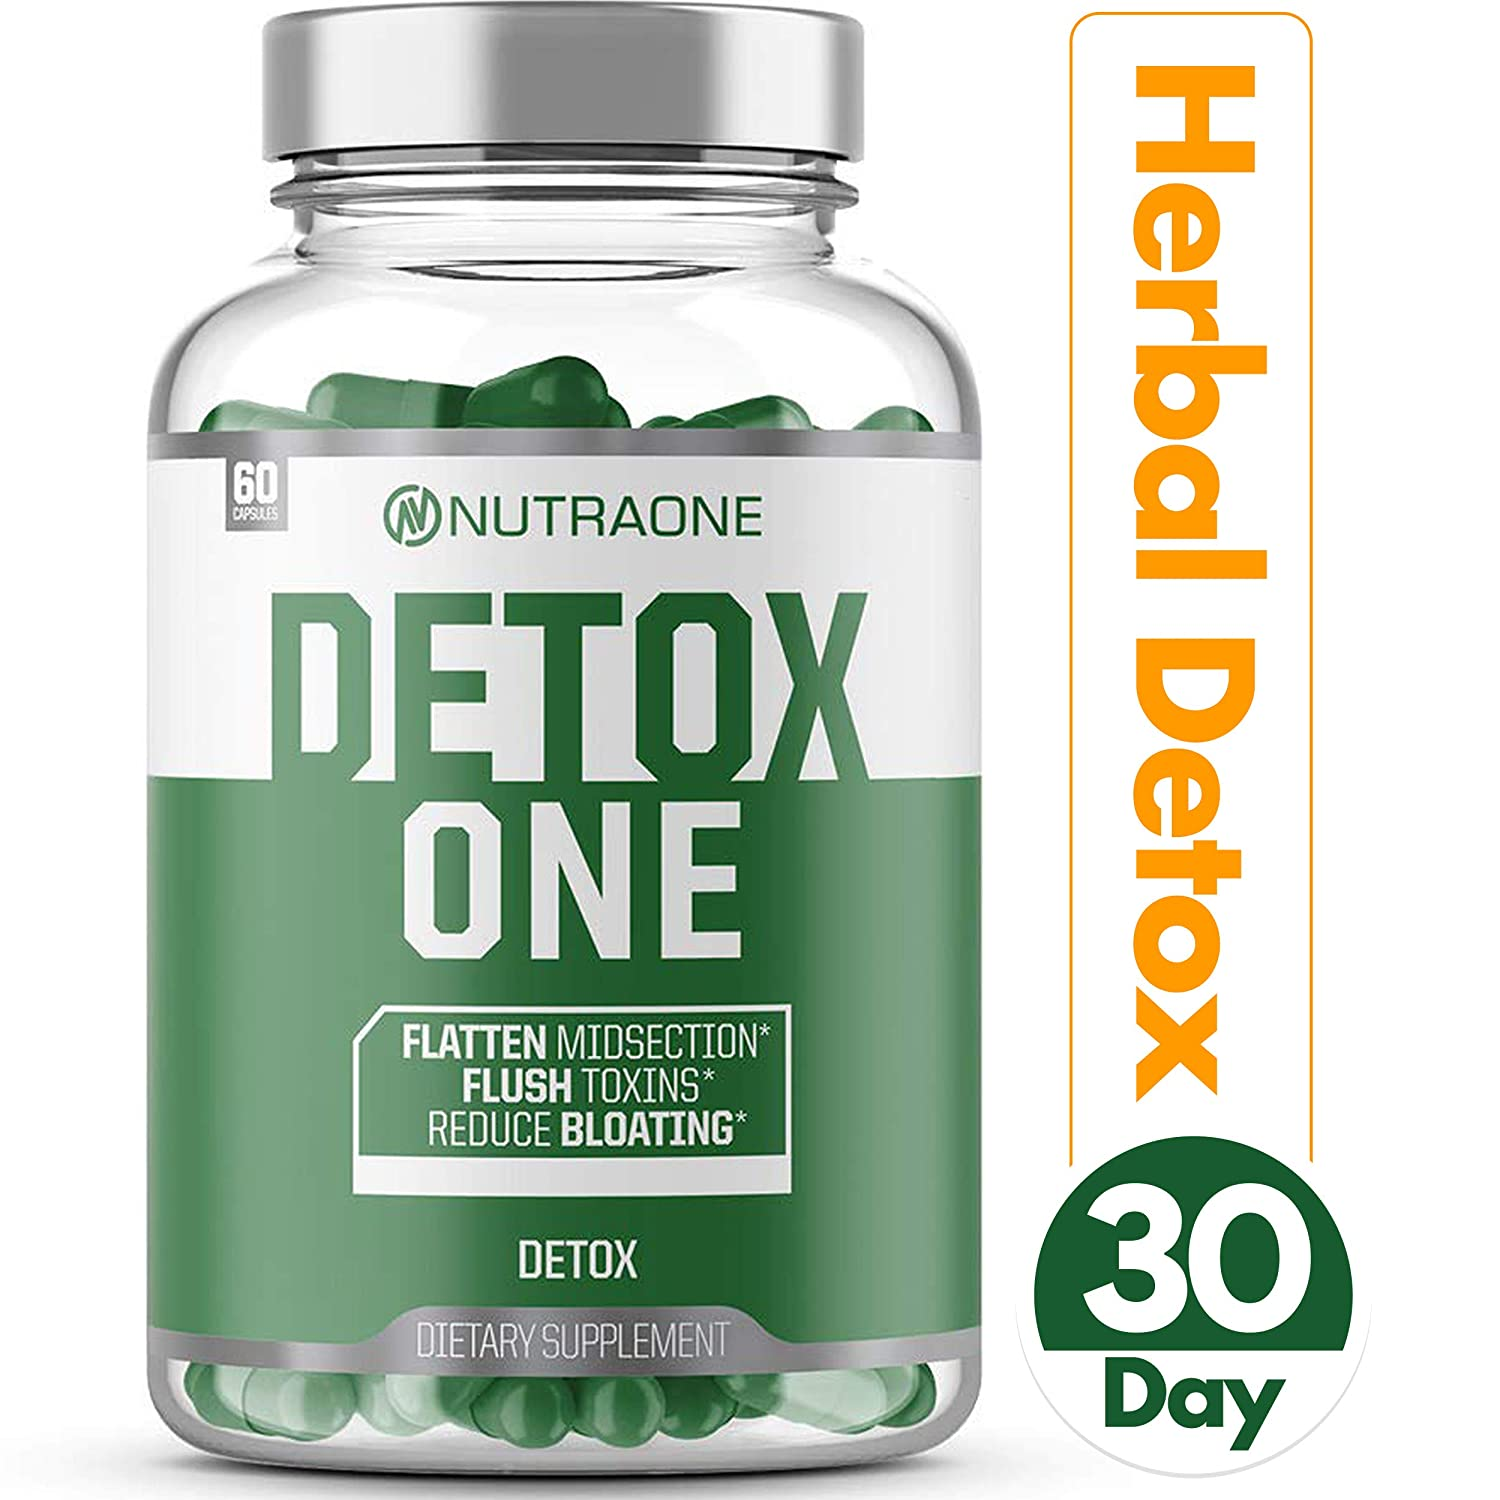 DetoxOne Natural Detox Support Supplement by NutraOne Plant-Based Herbal Blend of Superfoods that Includes Milk Thistle, Flaxseed, Psyllium Husk, Senna Leaf Gallbladder, Liver Digestive Support*